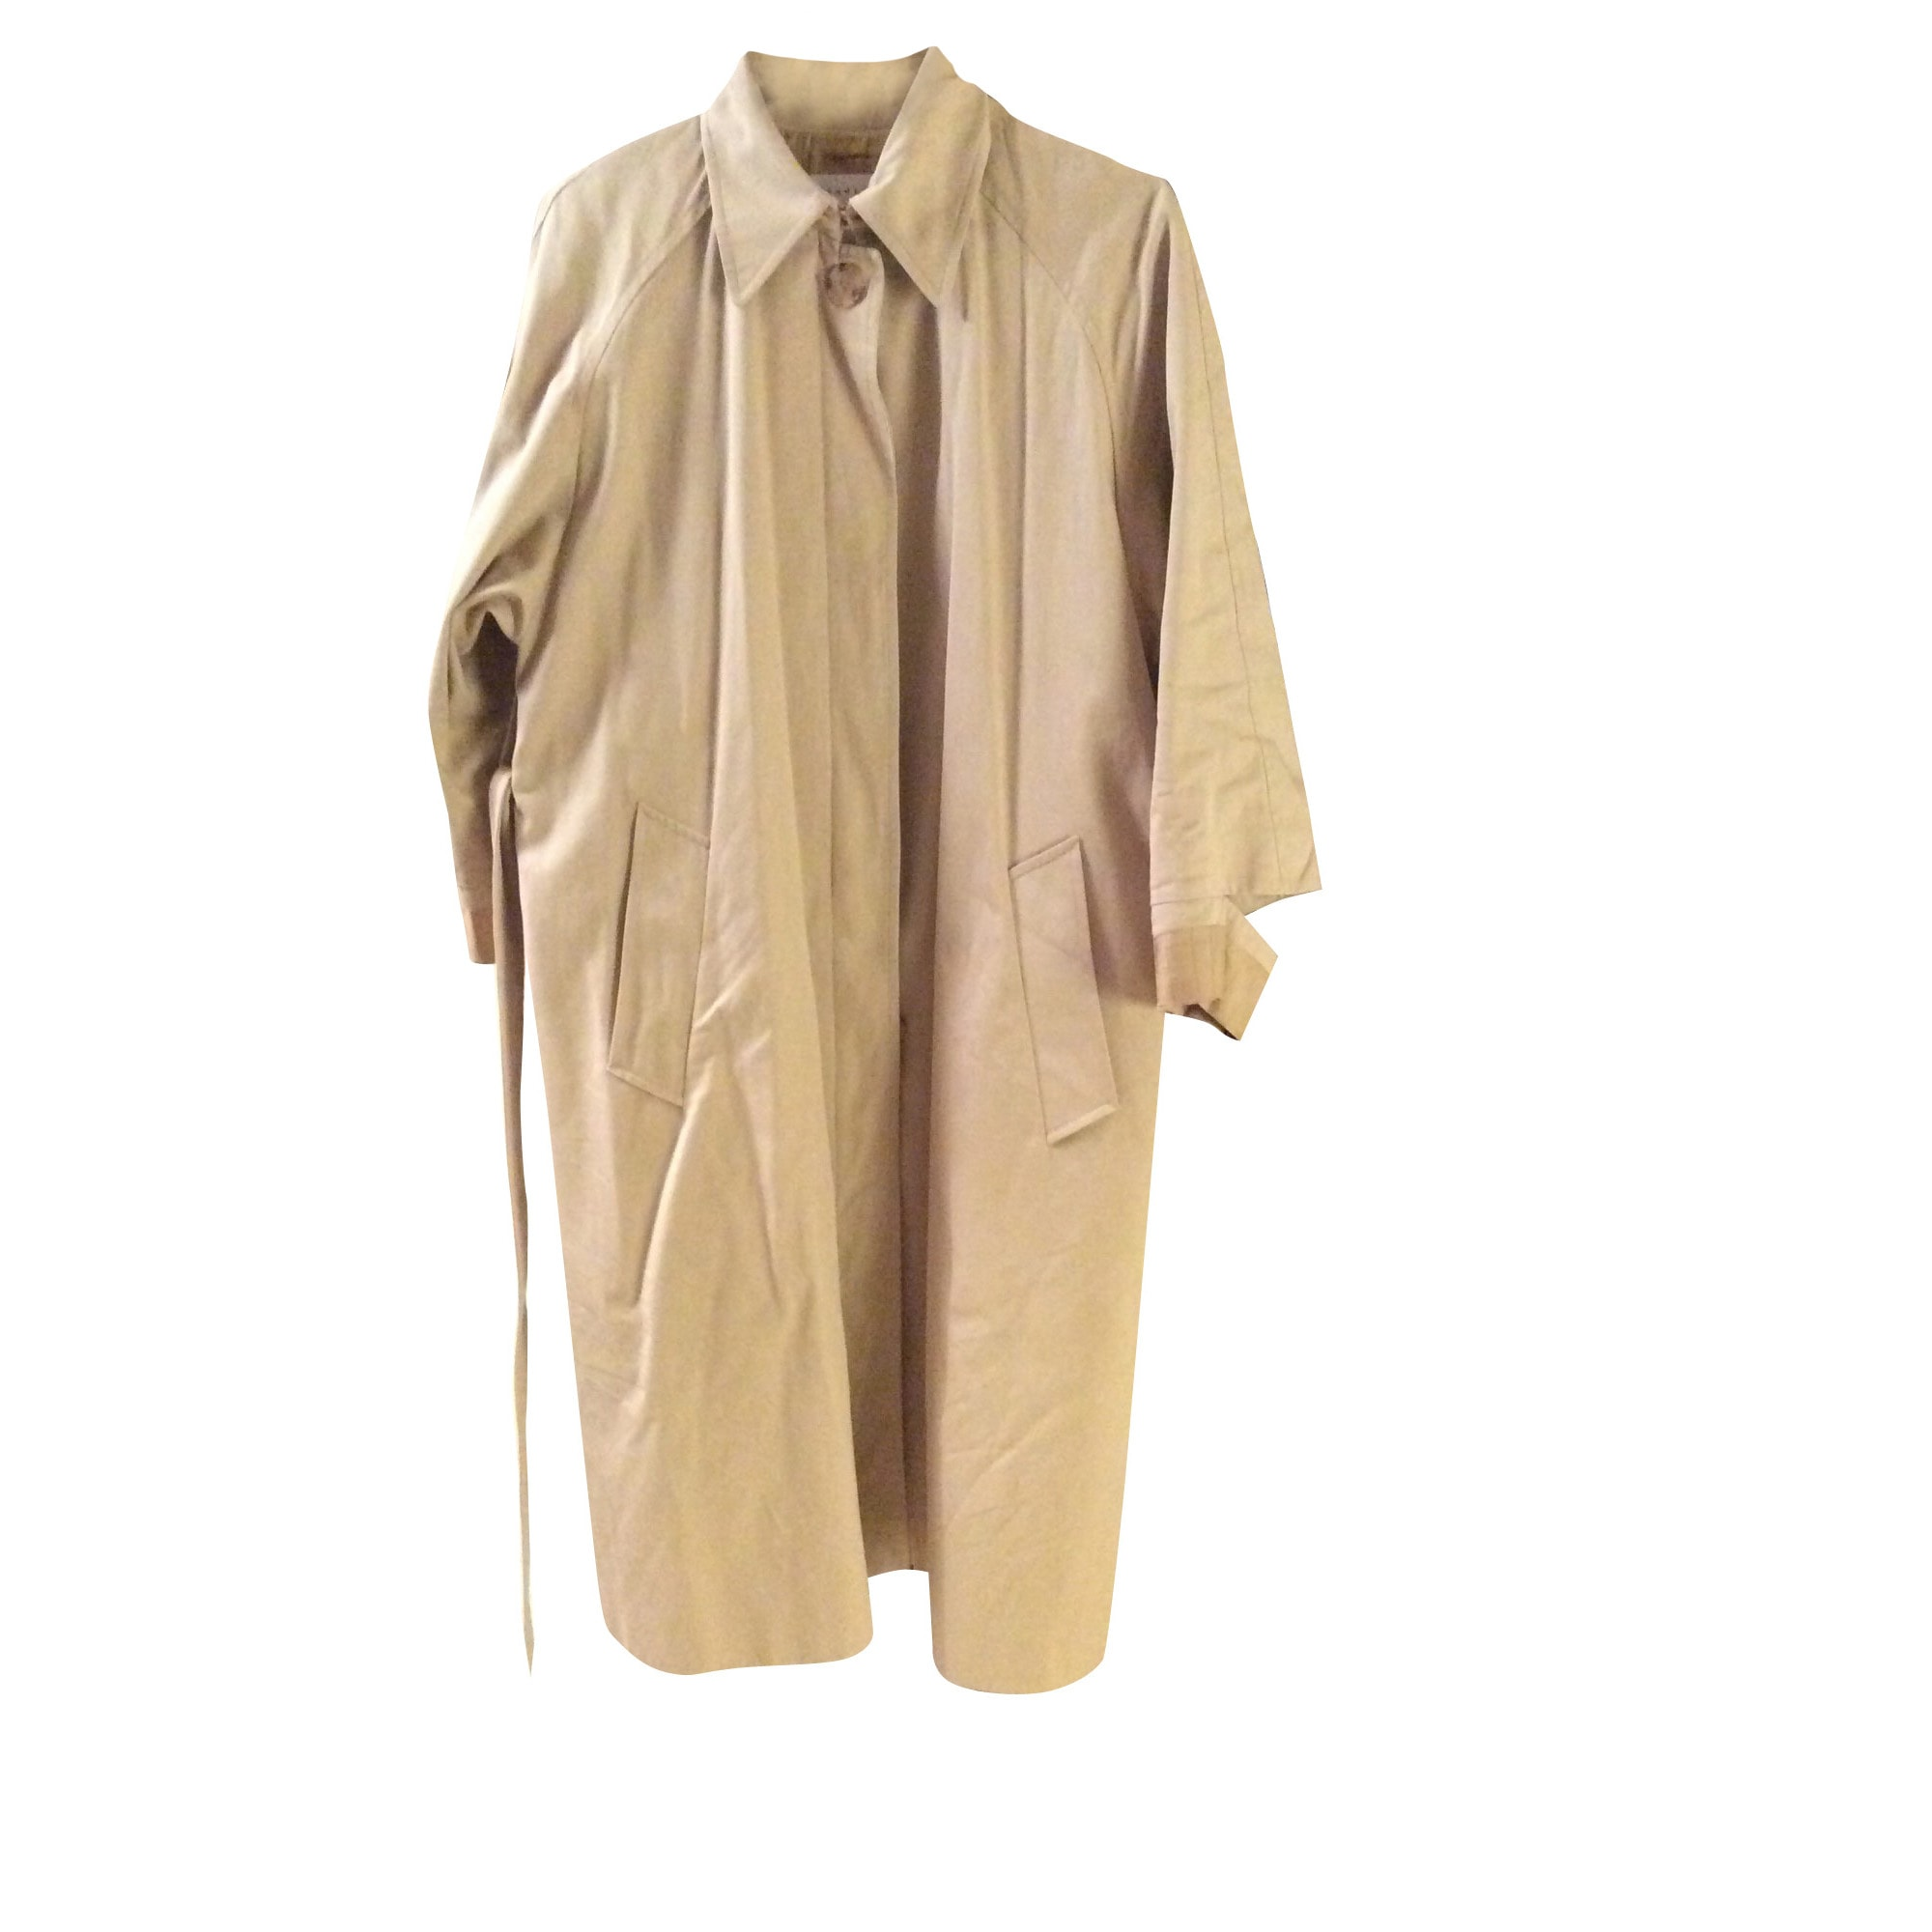 Imperméable, trench SANDRO Beige, camel